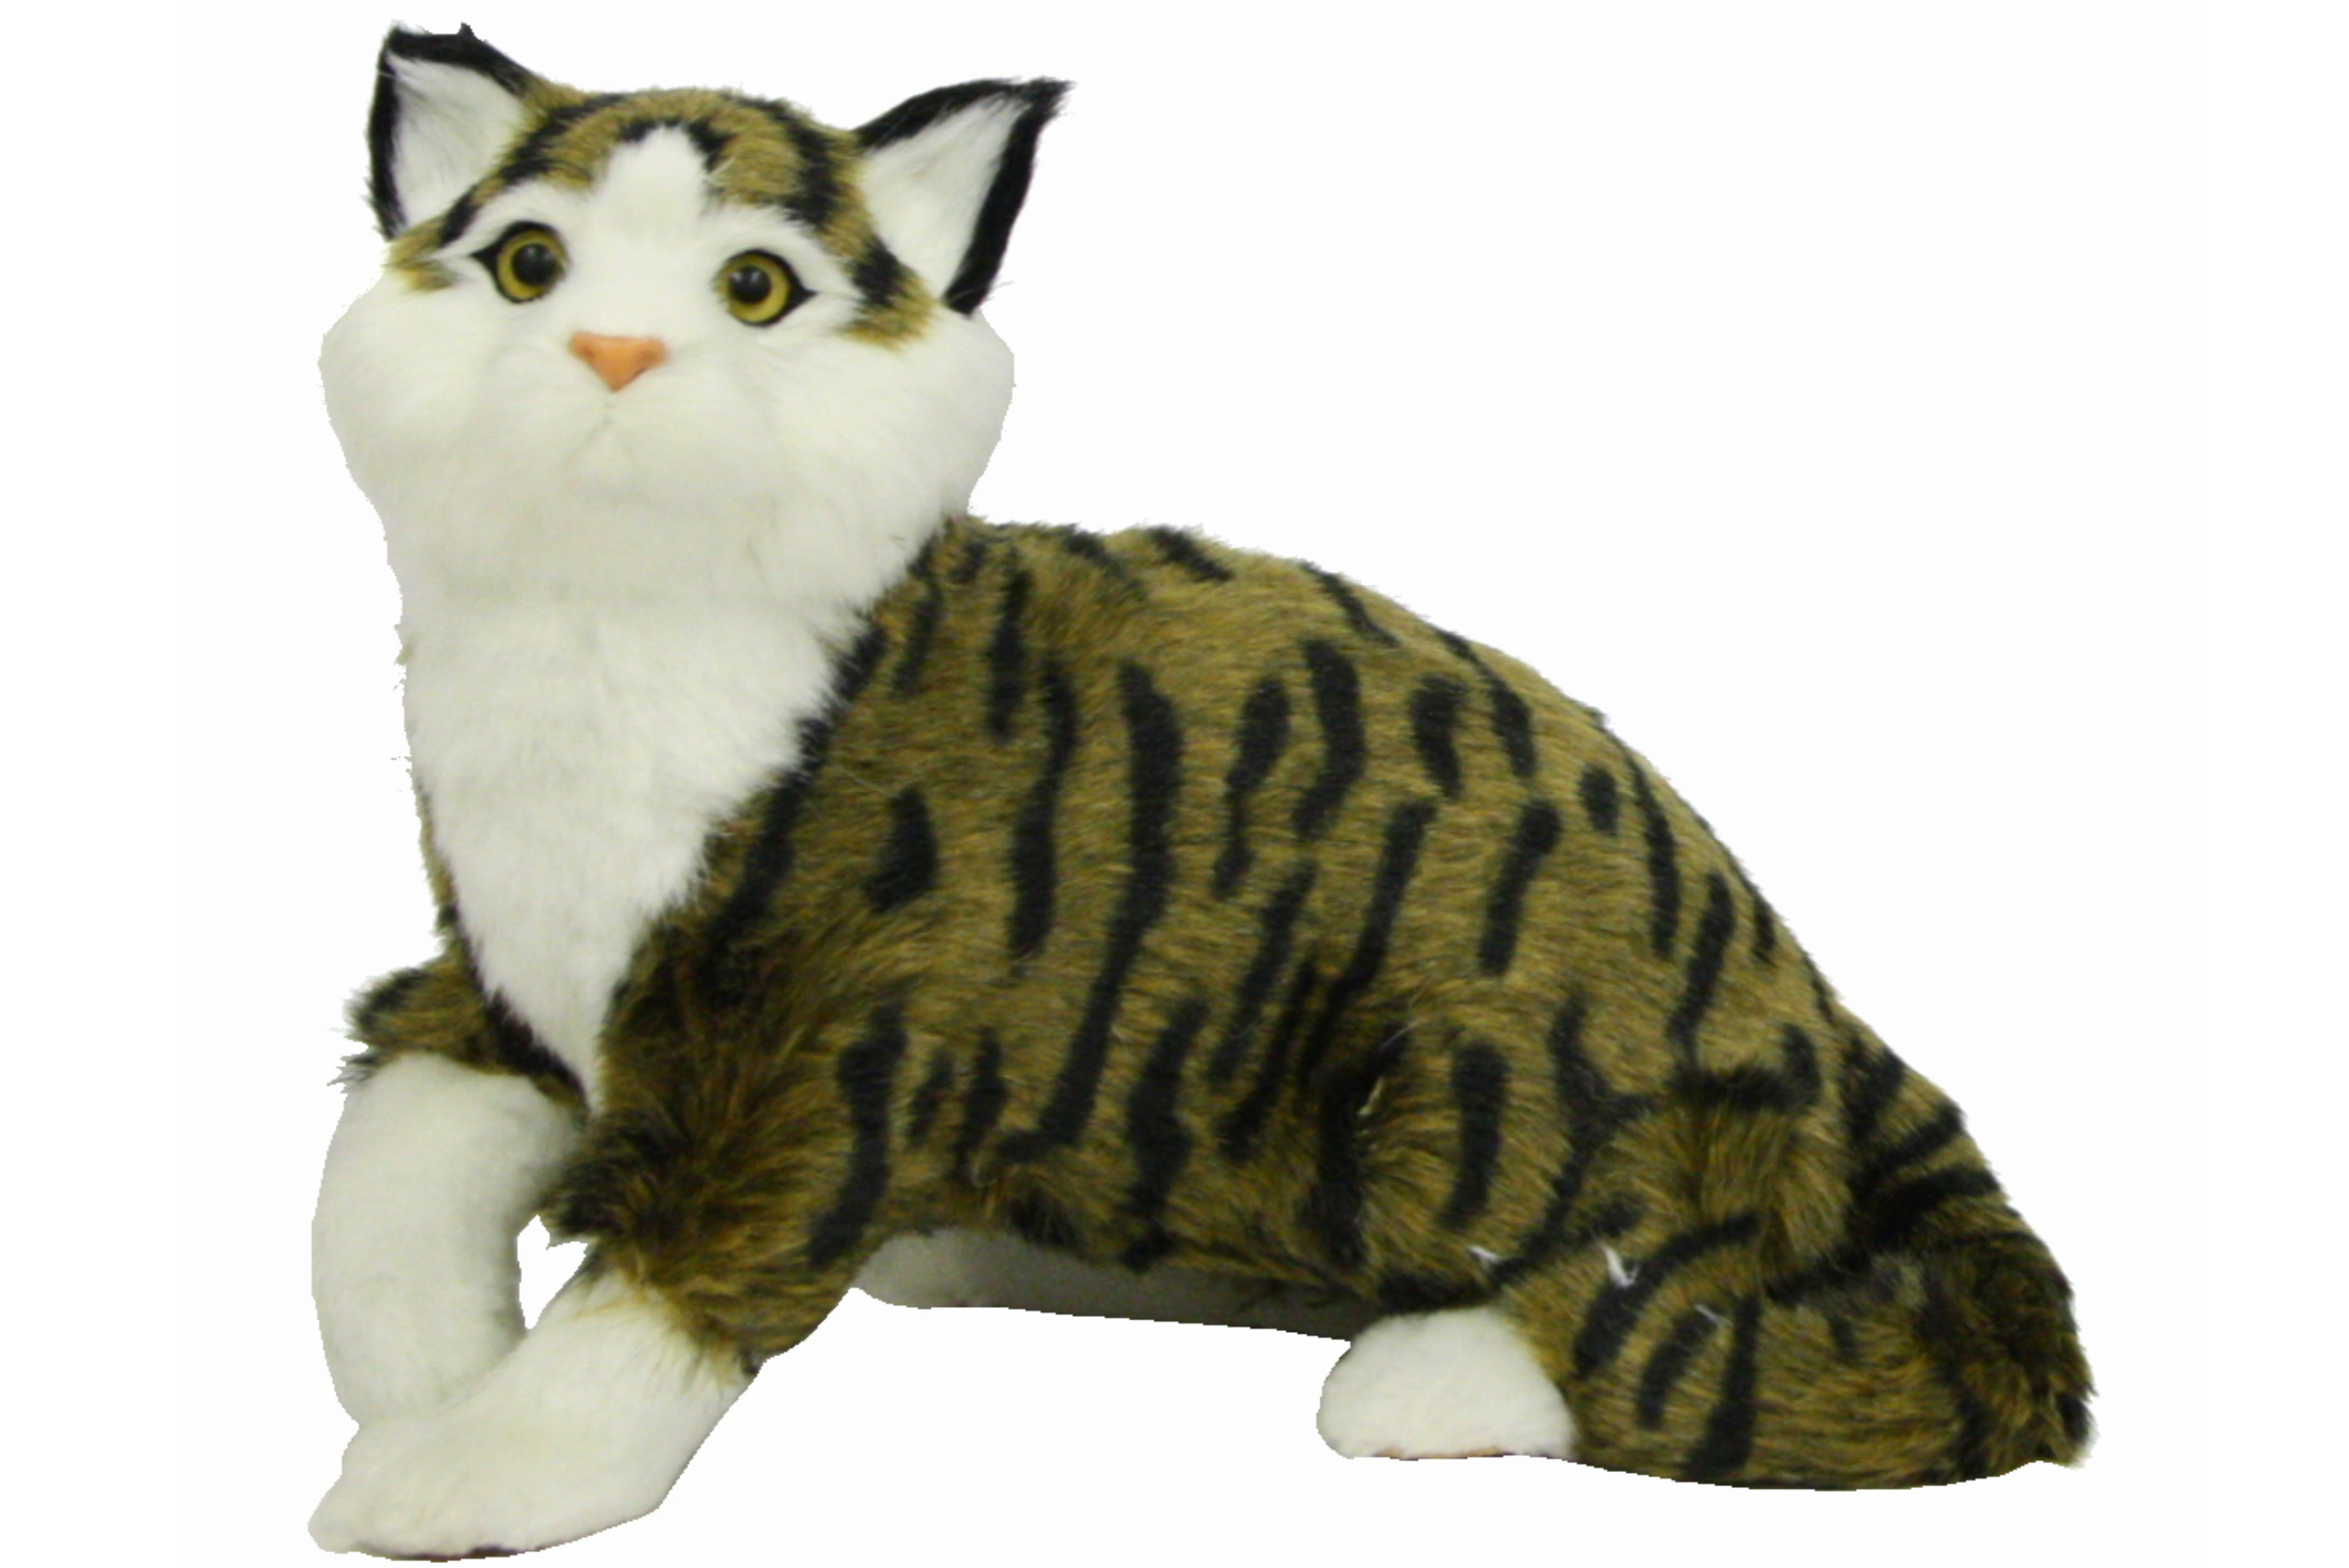 26cm Prowling Cat - 3 Assorted